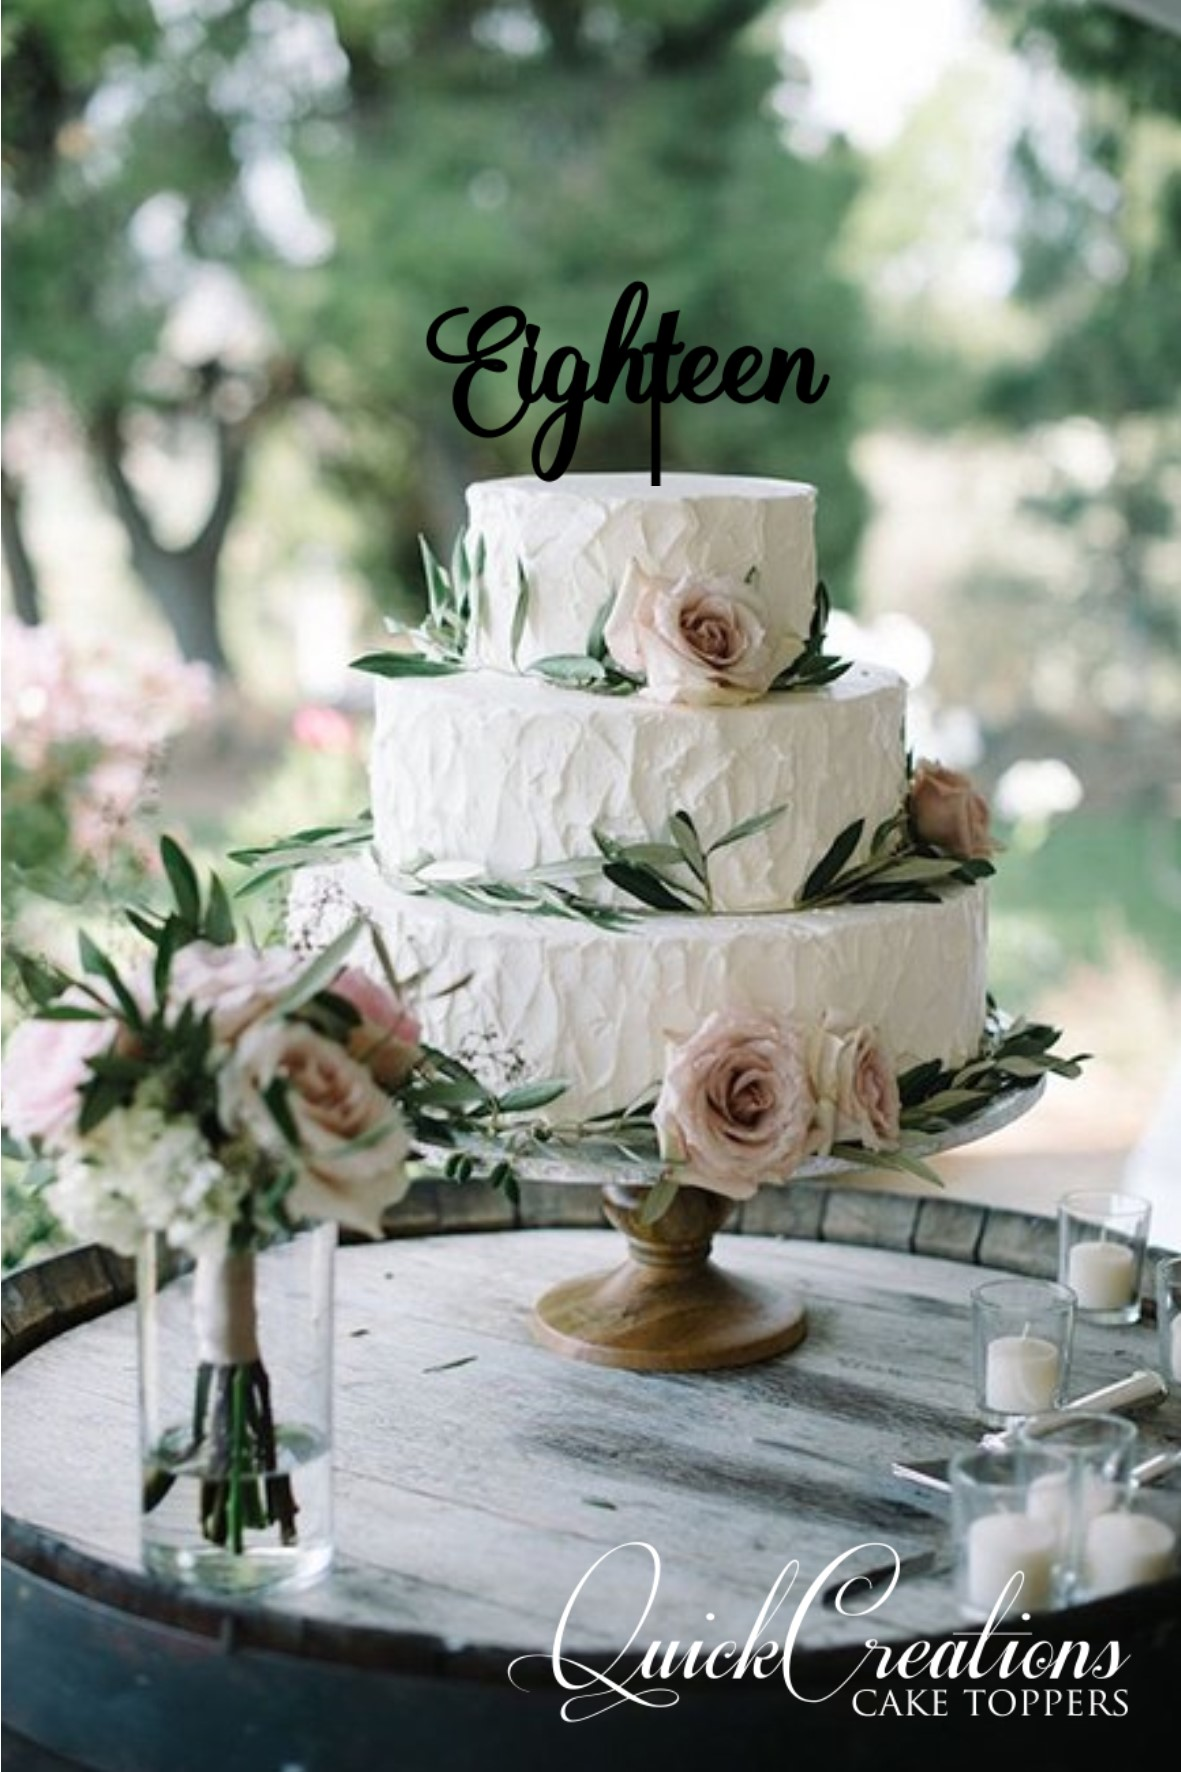 Quick Creations Cake Topper - Eighteen v3